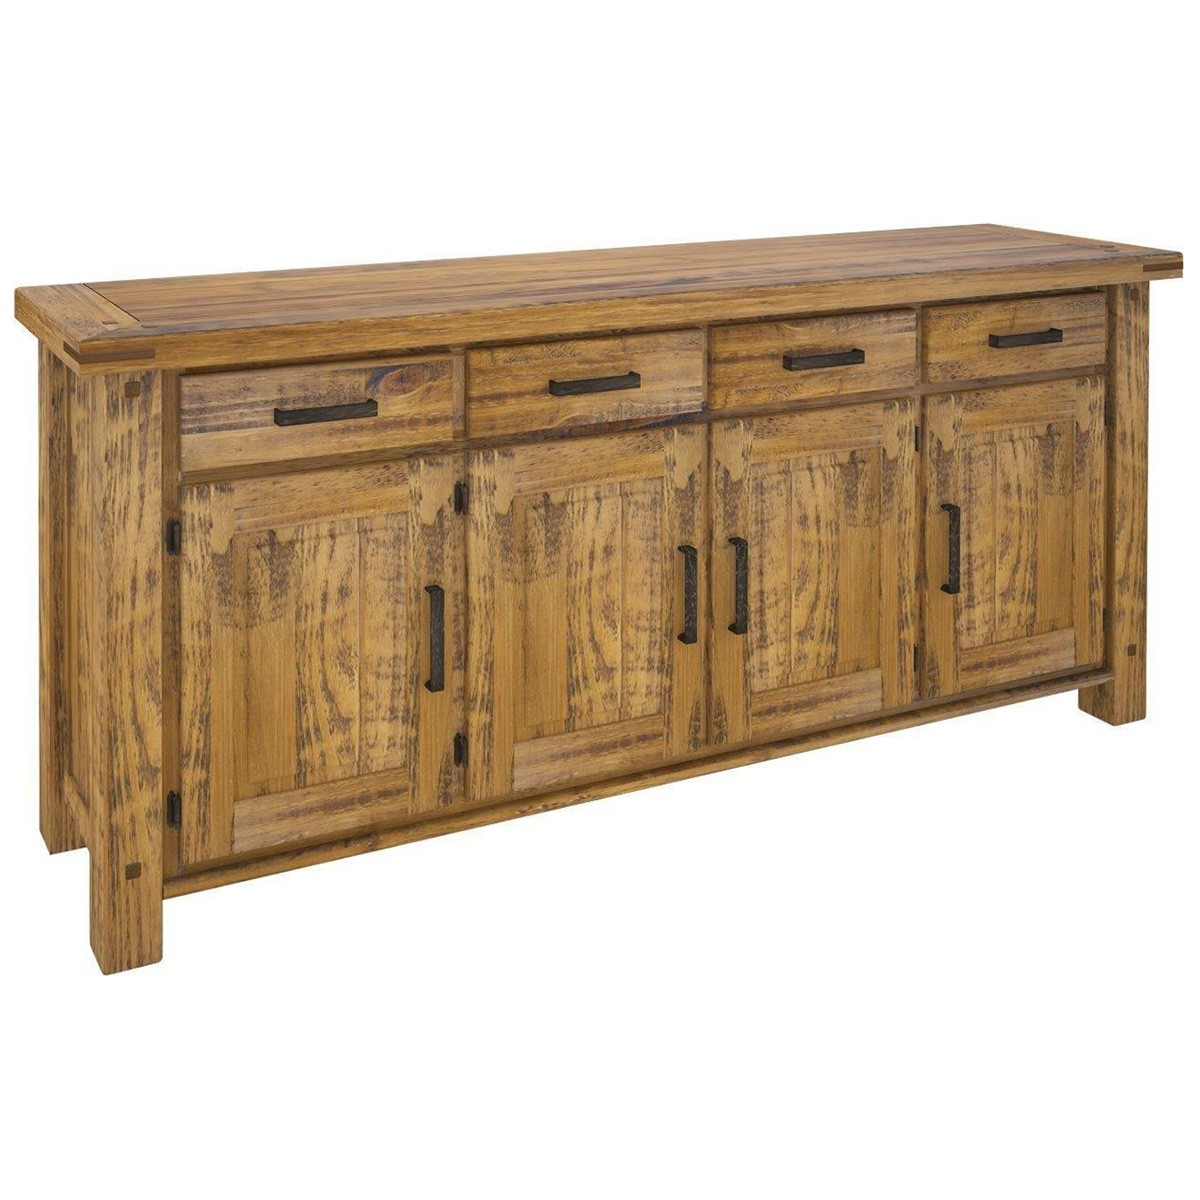 Serafin Rustic Pine Timber 4 Door 4 Drawer Buffet Table, 191cm